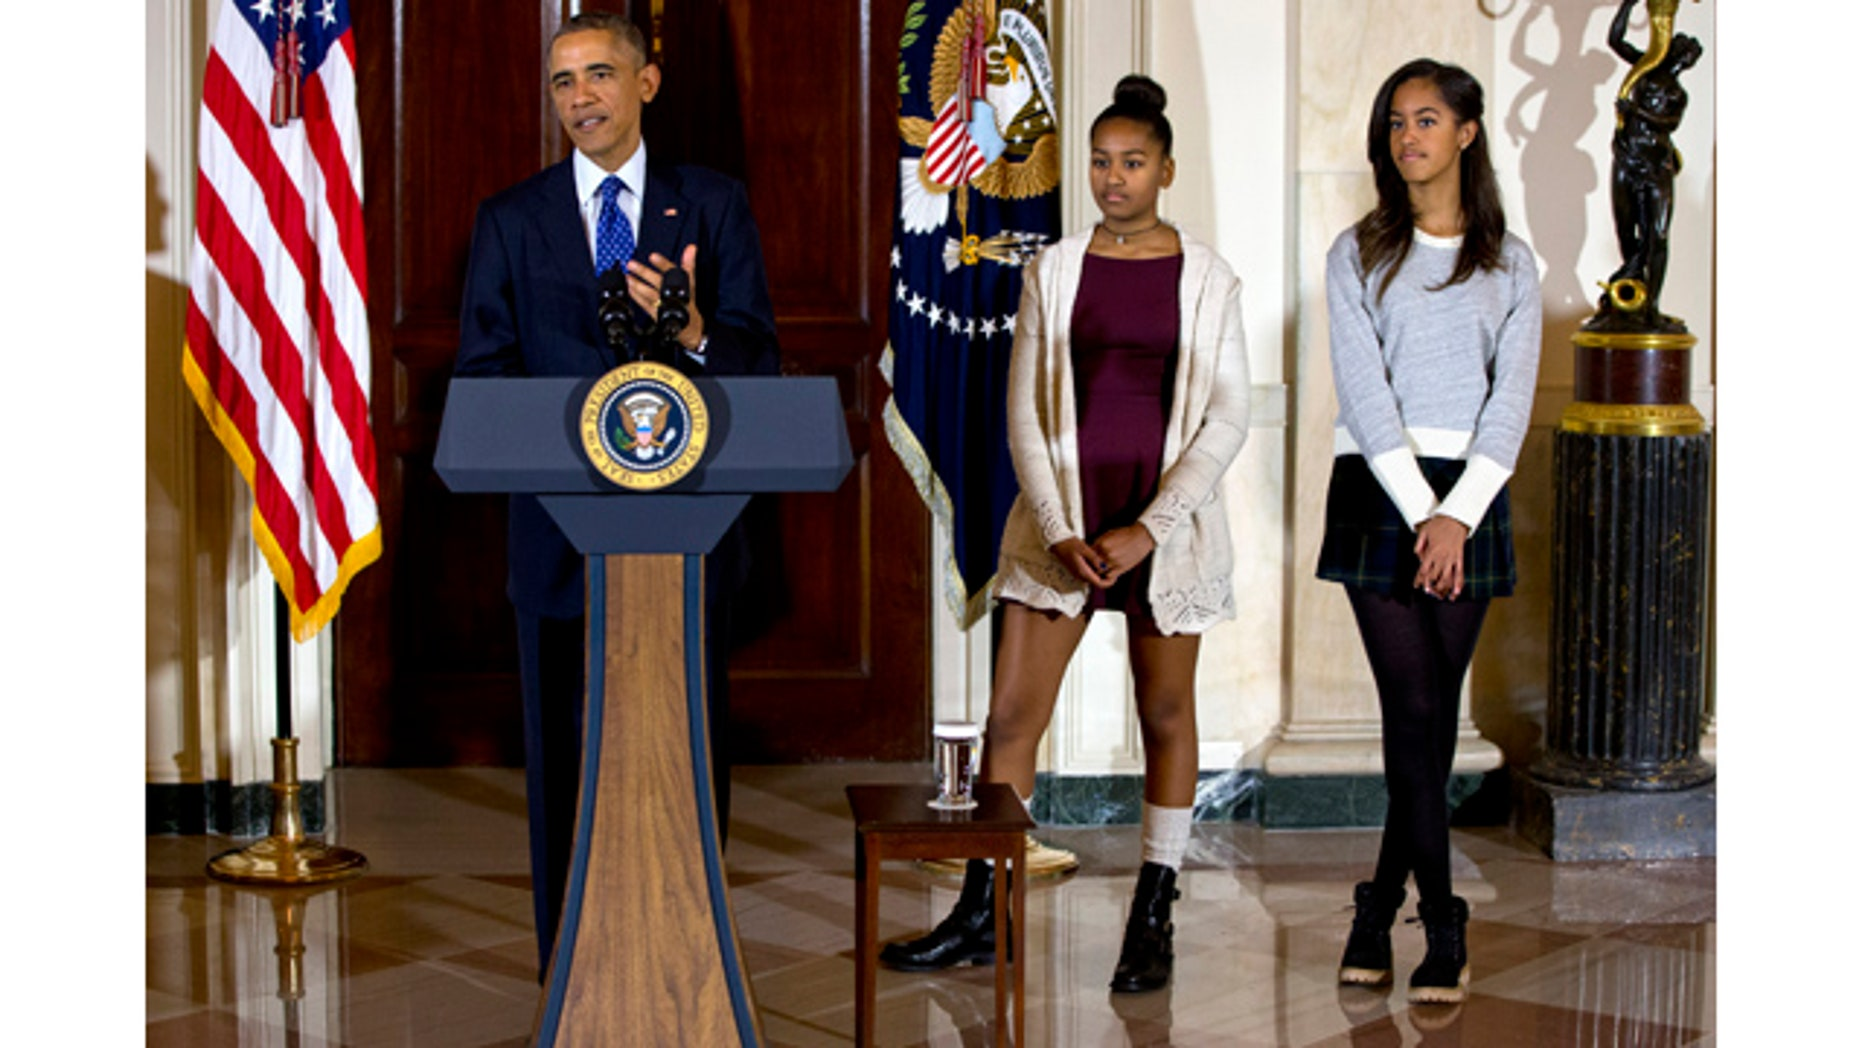 November 26, 2014: President Barack Obama, joined by his daughters Malia, right, and Sasha, center, speaks during the presidential turkey pardon ceremony at the White House. (AP Photo/Jacquelyn Martin)